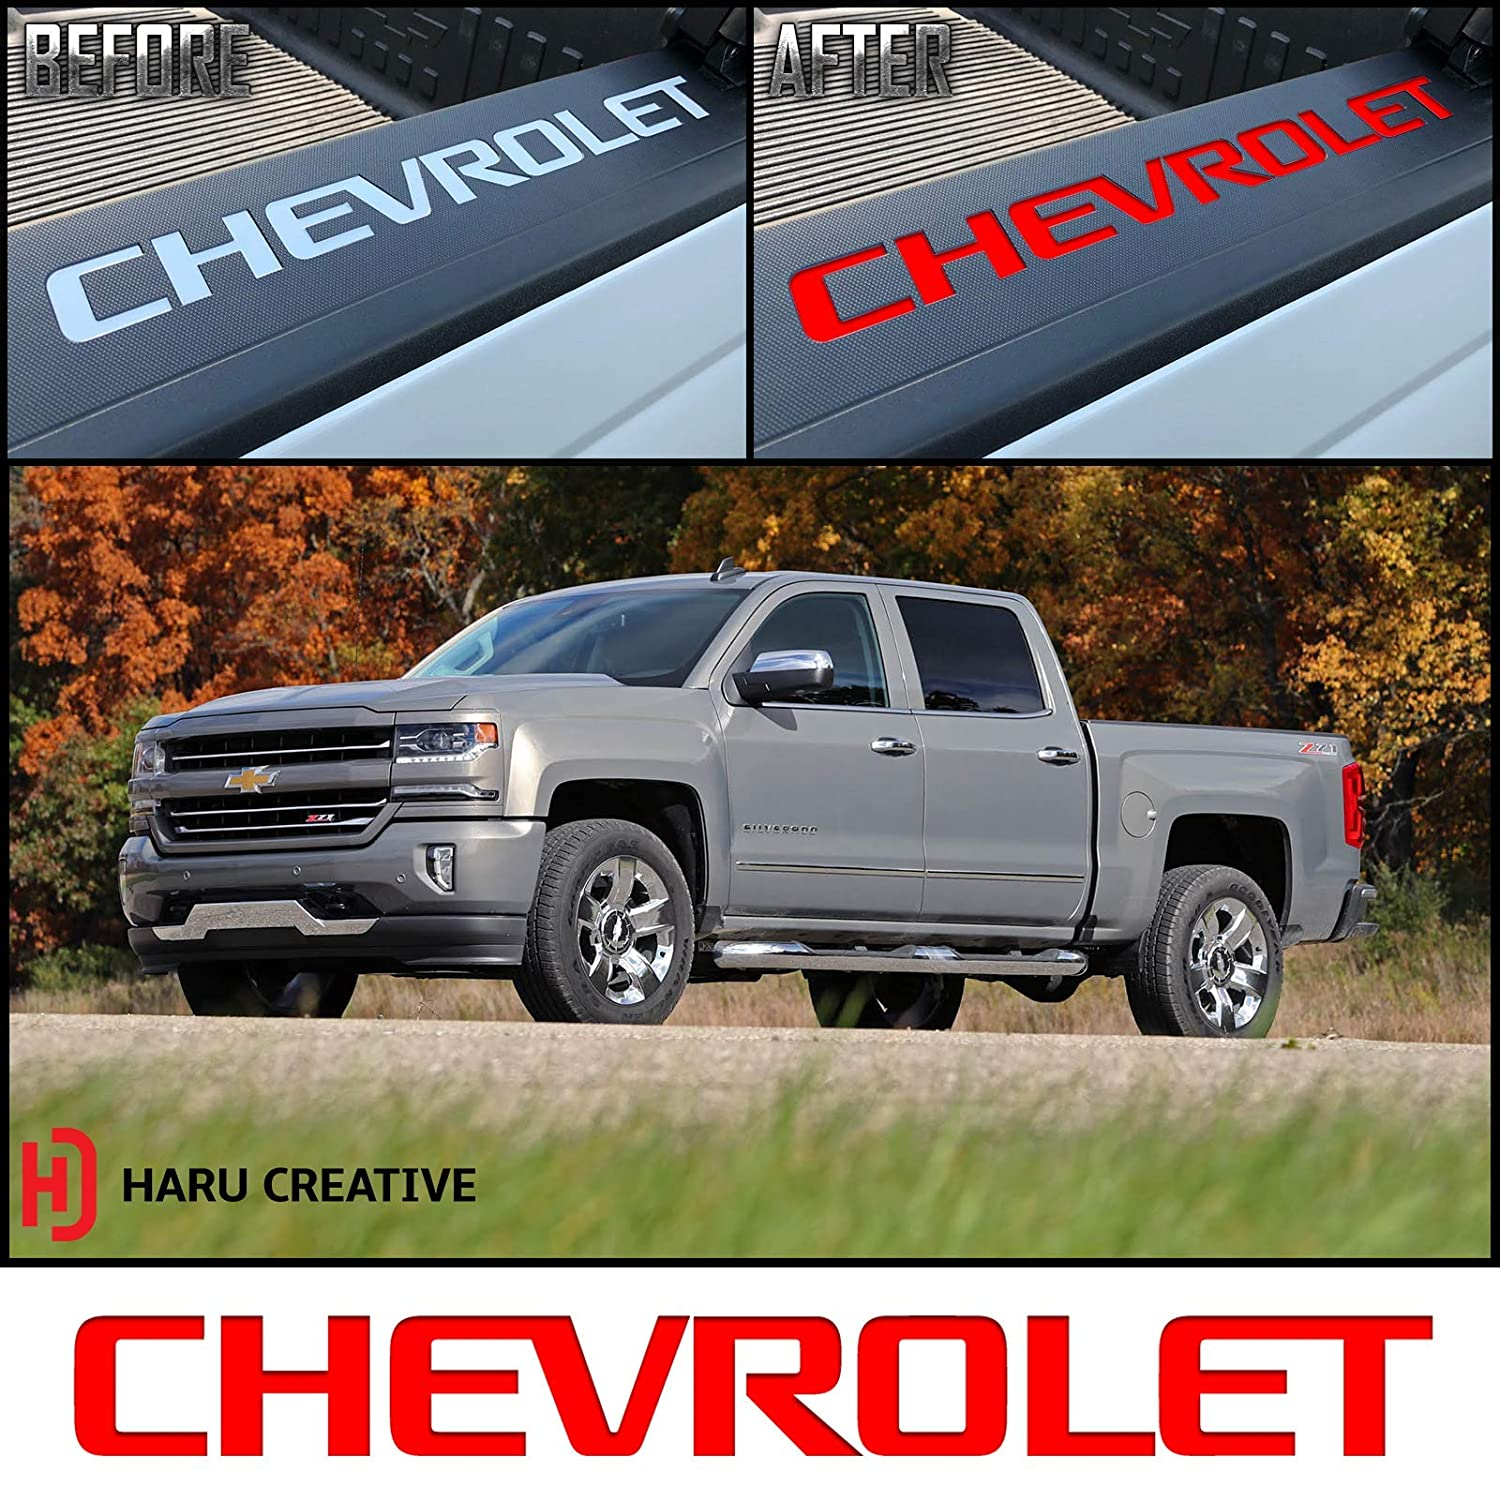 Chrome Steel Blue Haru Creative Rear Trunk Tailgate Bed Rail Cap Letter Insert Overlay Vinyl Decal Compatible Chevy Chevrolet Silverado 2014-2018